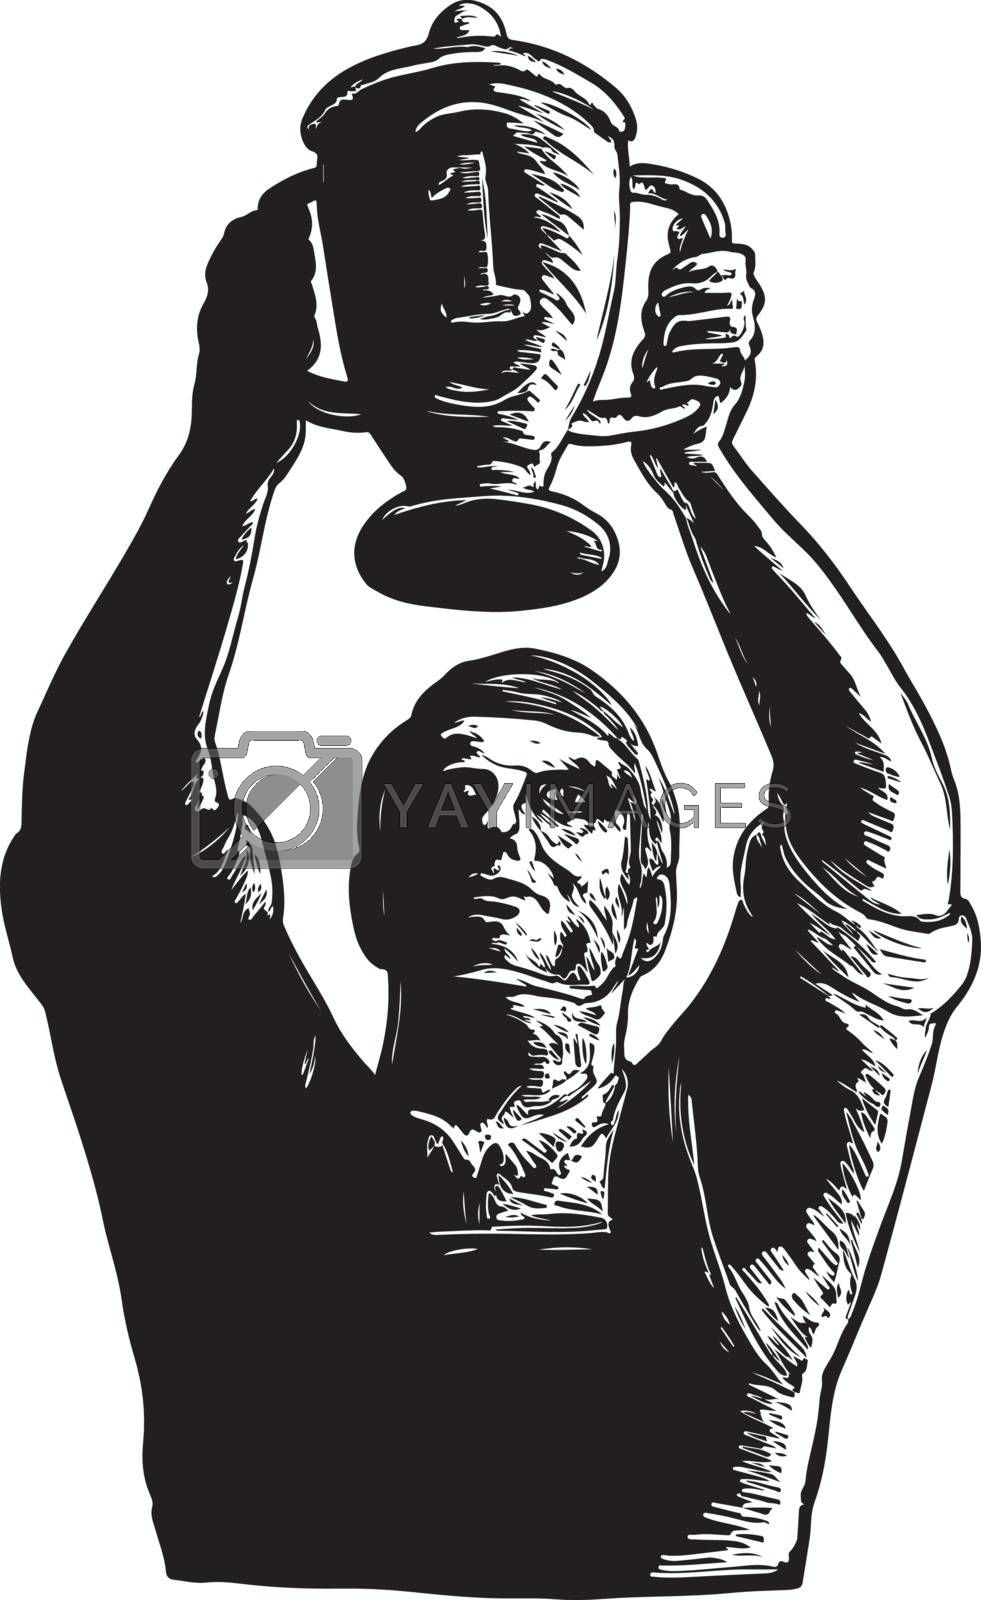 Scratchboard style illustration of a Champion Worker winning Lifting Championship trophy Cup viewed from front done on scraperboard on isolated background.